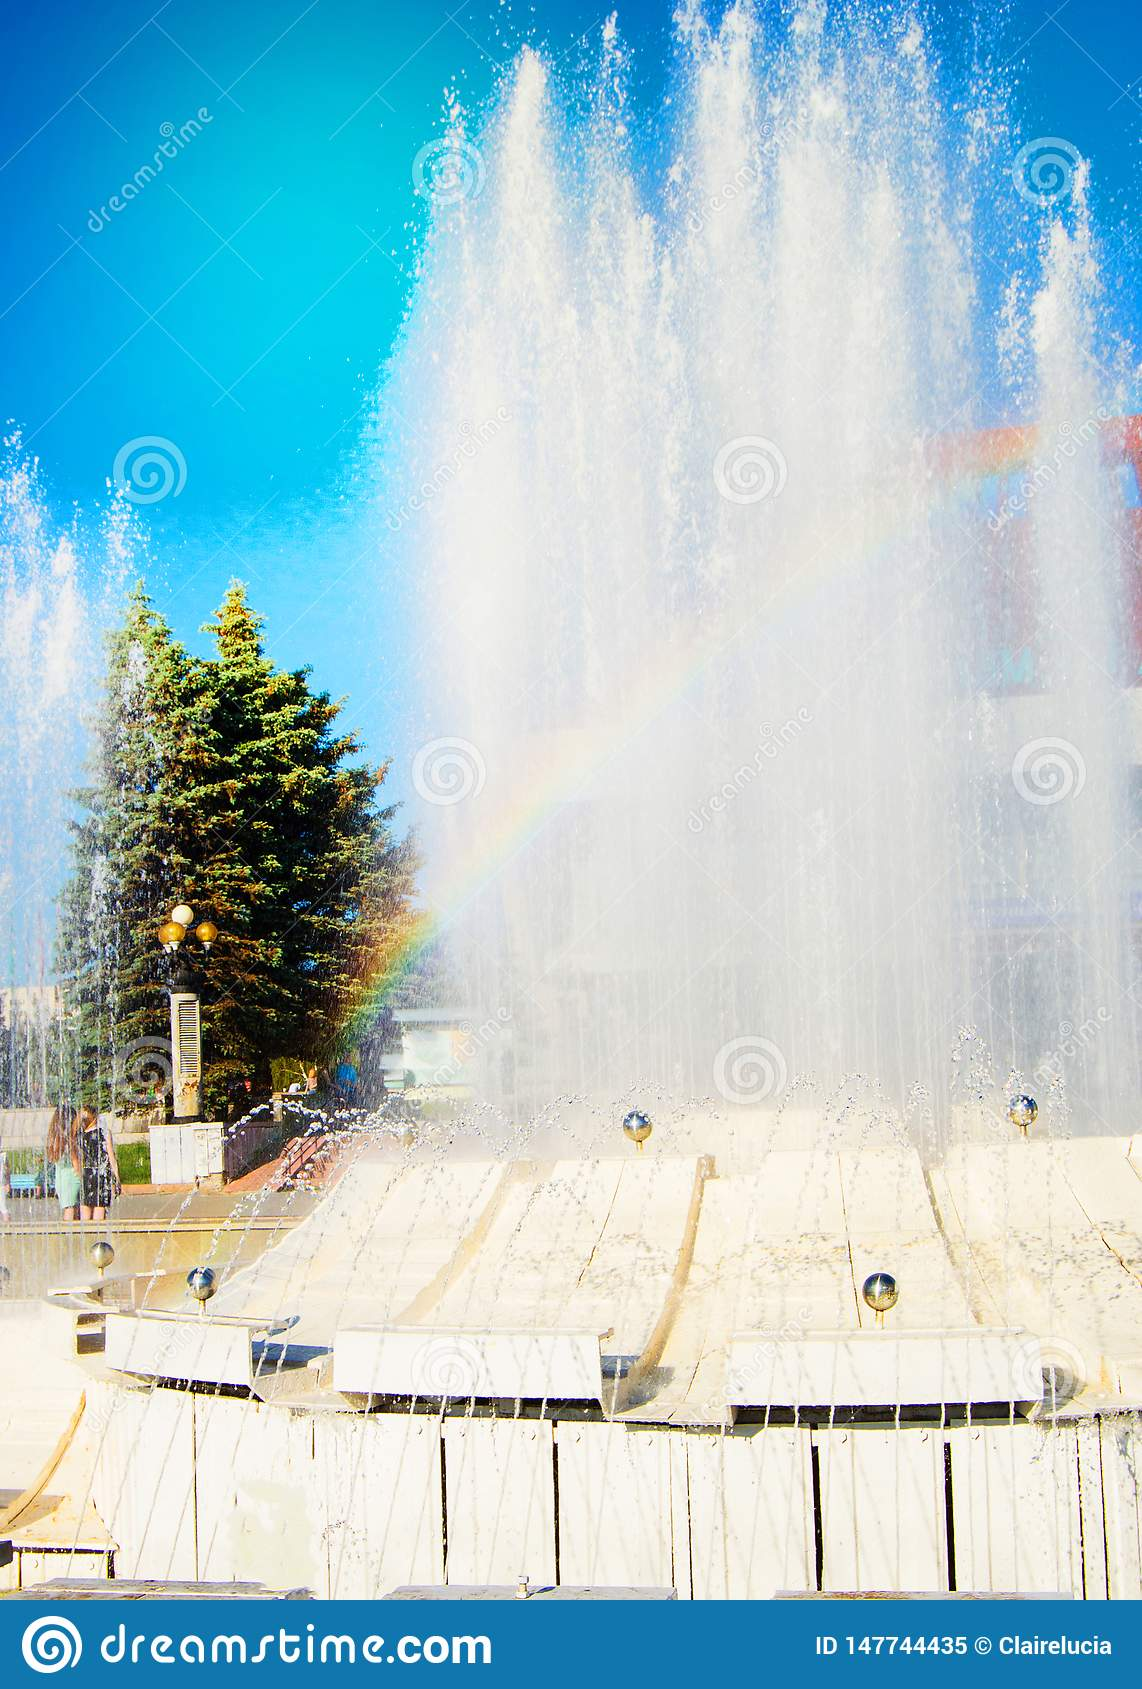 Blurred colorful rainbow on a background of splashing fountain on a Sunny summer day, vertical shot